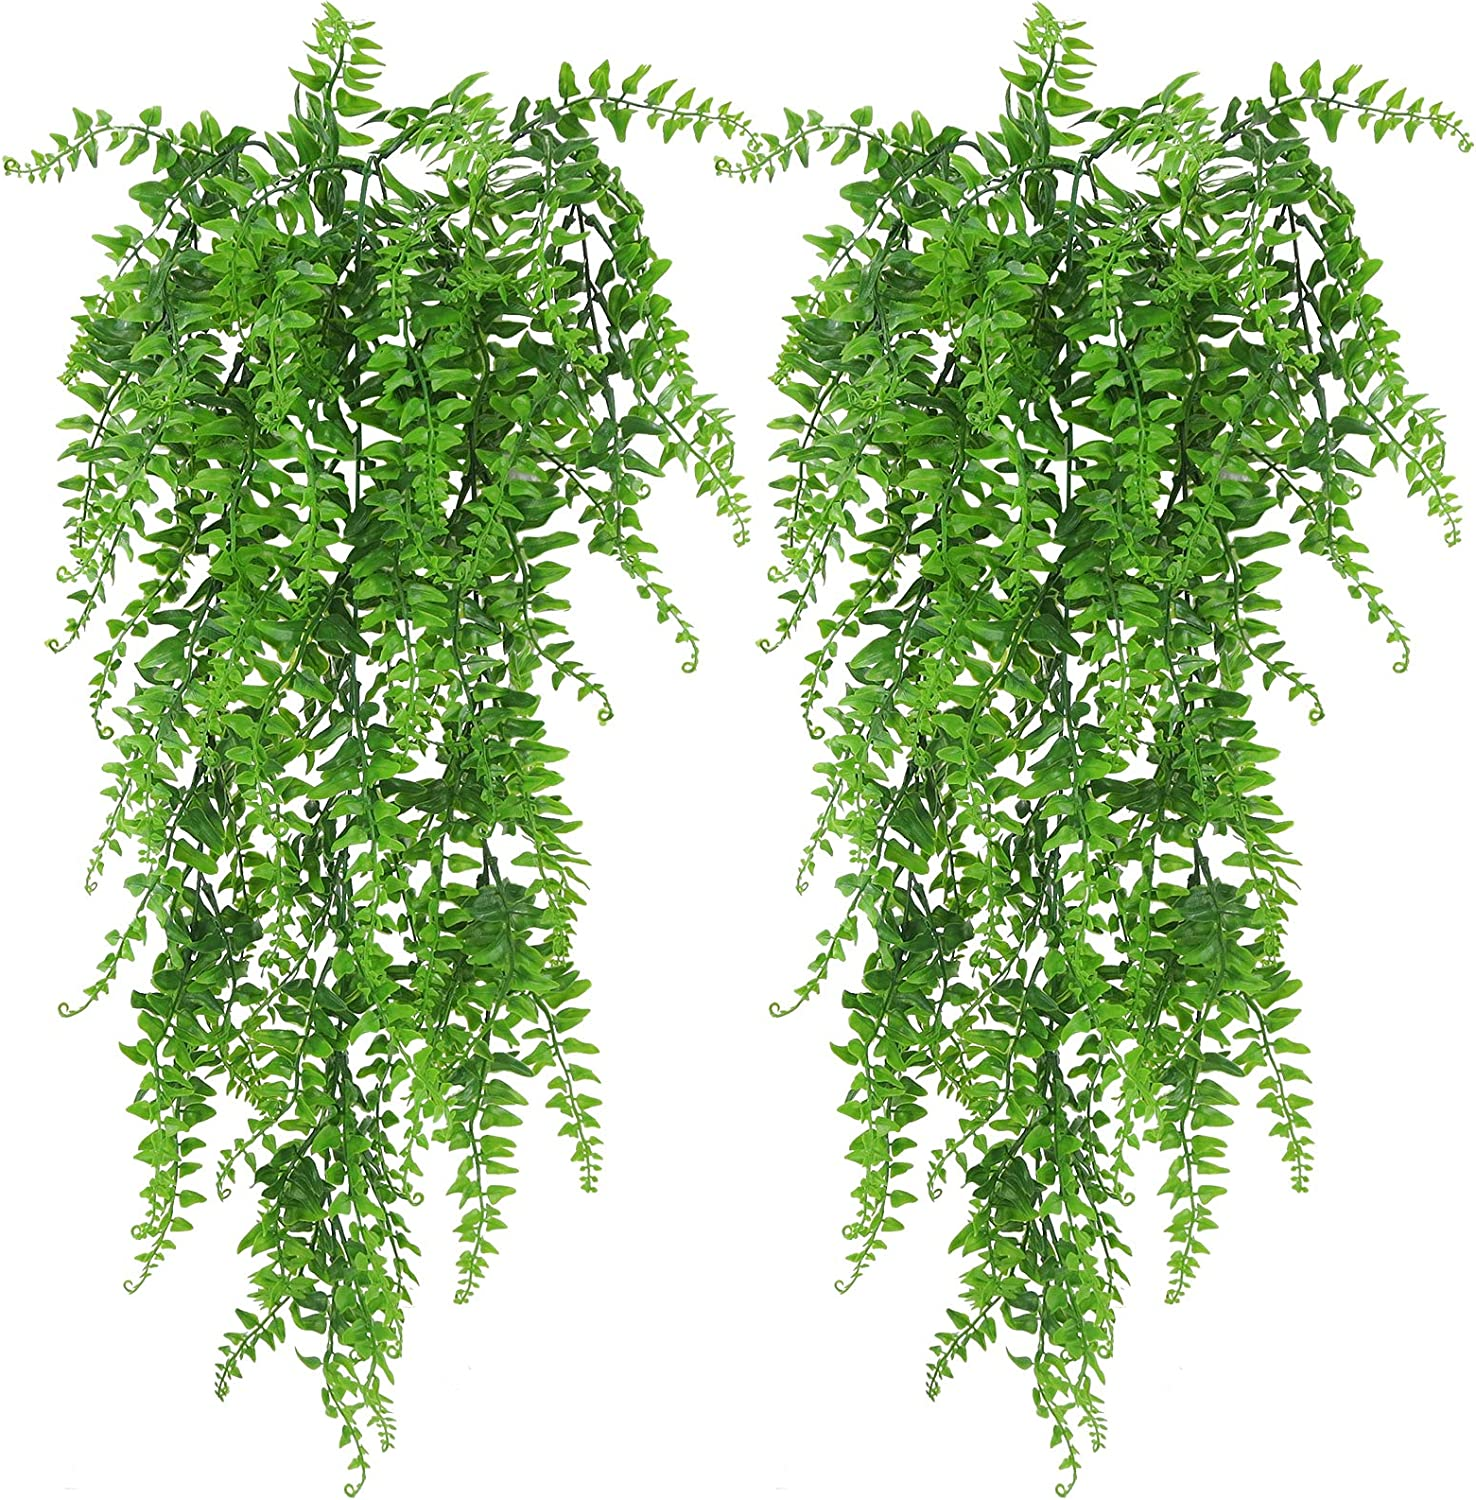 Artificial Hanging Plants Fake Vines Greenery Faux Ivy Leaves for Wall Home Room Garden Wedding Garland Outside Decoration (2Pack Boston Ferns)